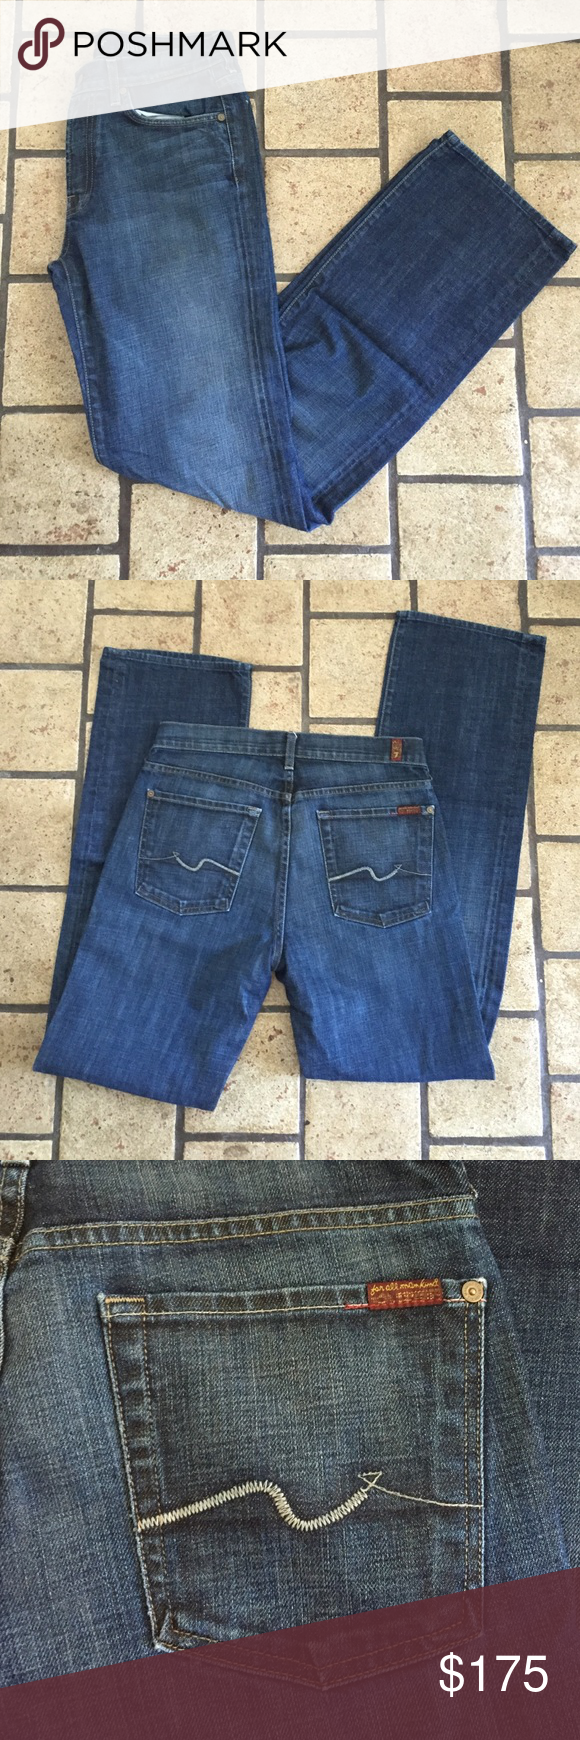 Men's 7 For All Mankind jeans Barely worn, if ever. Like new! Length is 33. 7 For All Mankind Jeans Straight